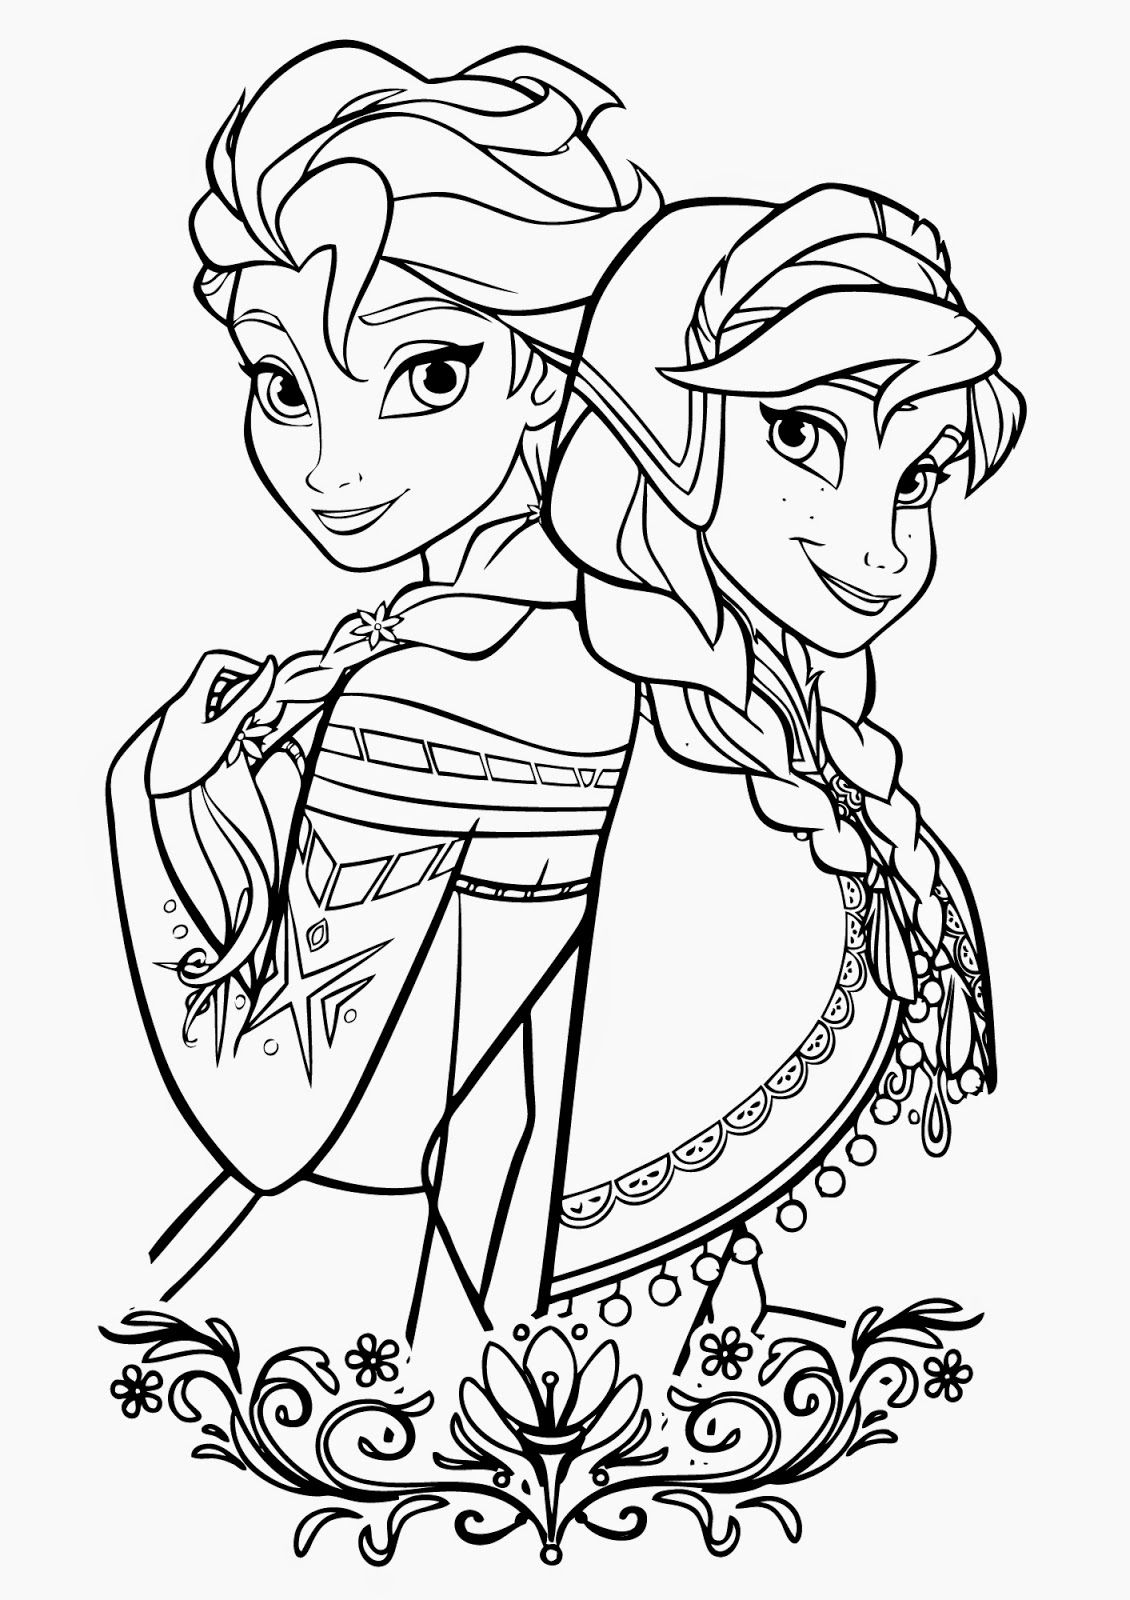 Free coloring pages printable frozen - Disney Frozen Olaf Coloring Pages Printable Coloring Pages Sheets For Kids Get The Latest Free Disney Frozen Olaf Coloring Pages Images Favorite Coloring